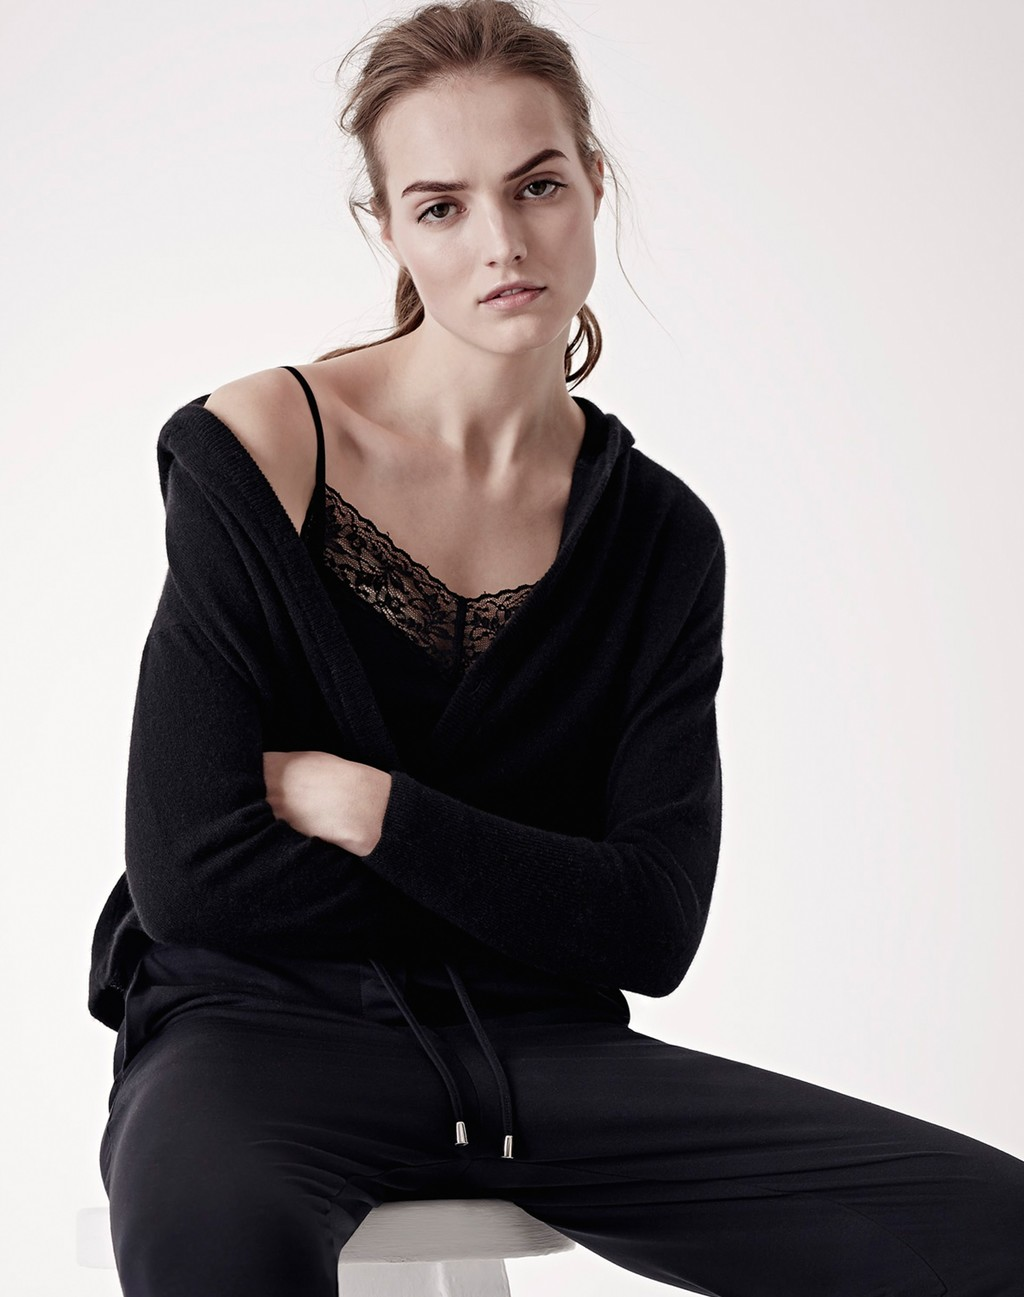 Lace Layering Cami Black - neckline: v-neck; pattern: plain; predominant colour: black; occasions: casual, work, creative work; length: standard; style: standard; fibres: silk - mix; fit: standard fit; sleeve length: long sleeve; sleeve style: standard; texture group: knits/crochet; pattern type: knitted - fine stitch; season: s/s 2016; wardrobe: basic